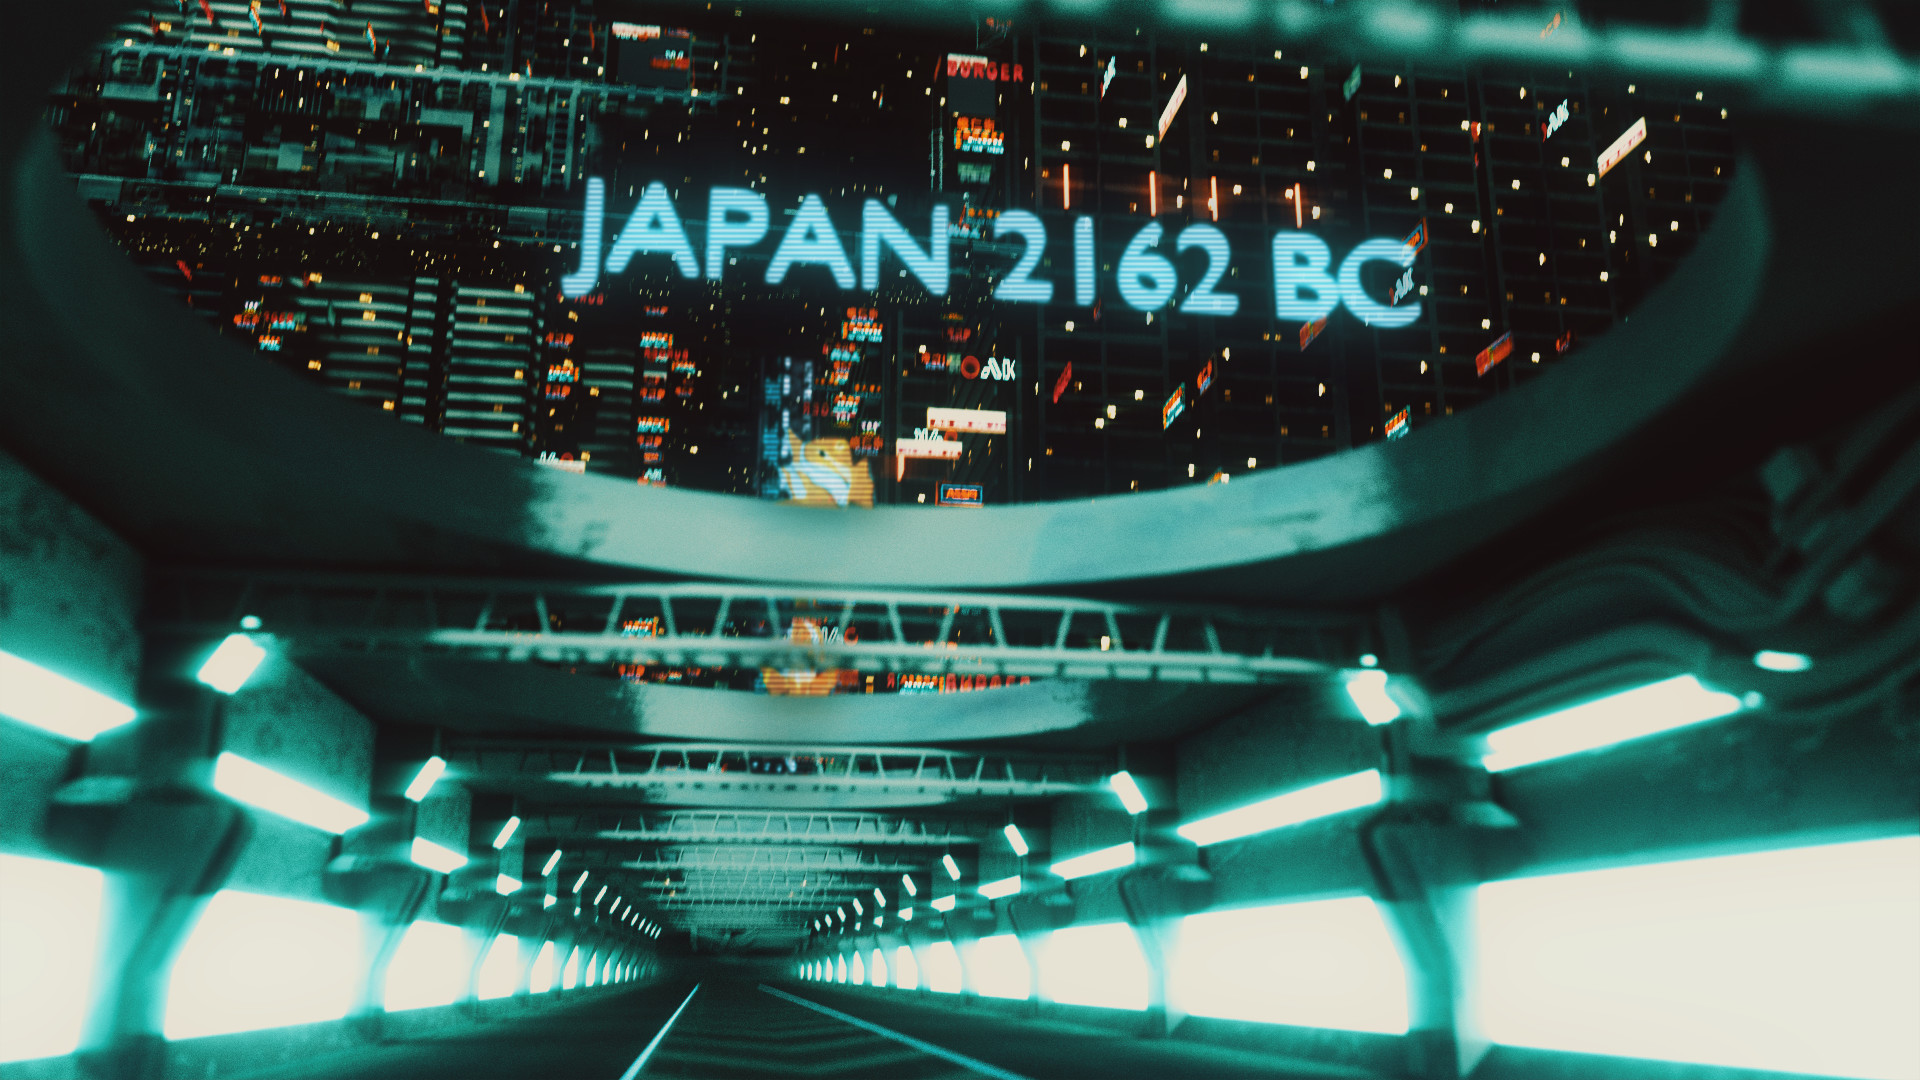 JAPAN 2162 (personal project EOL HORIZON)